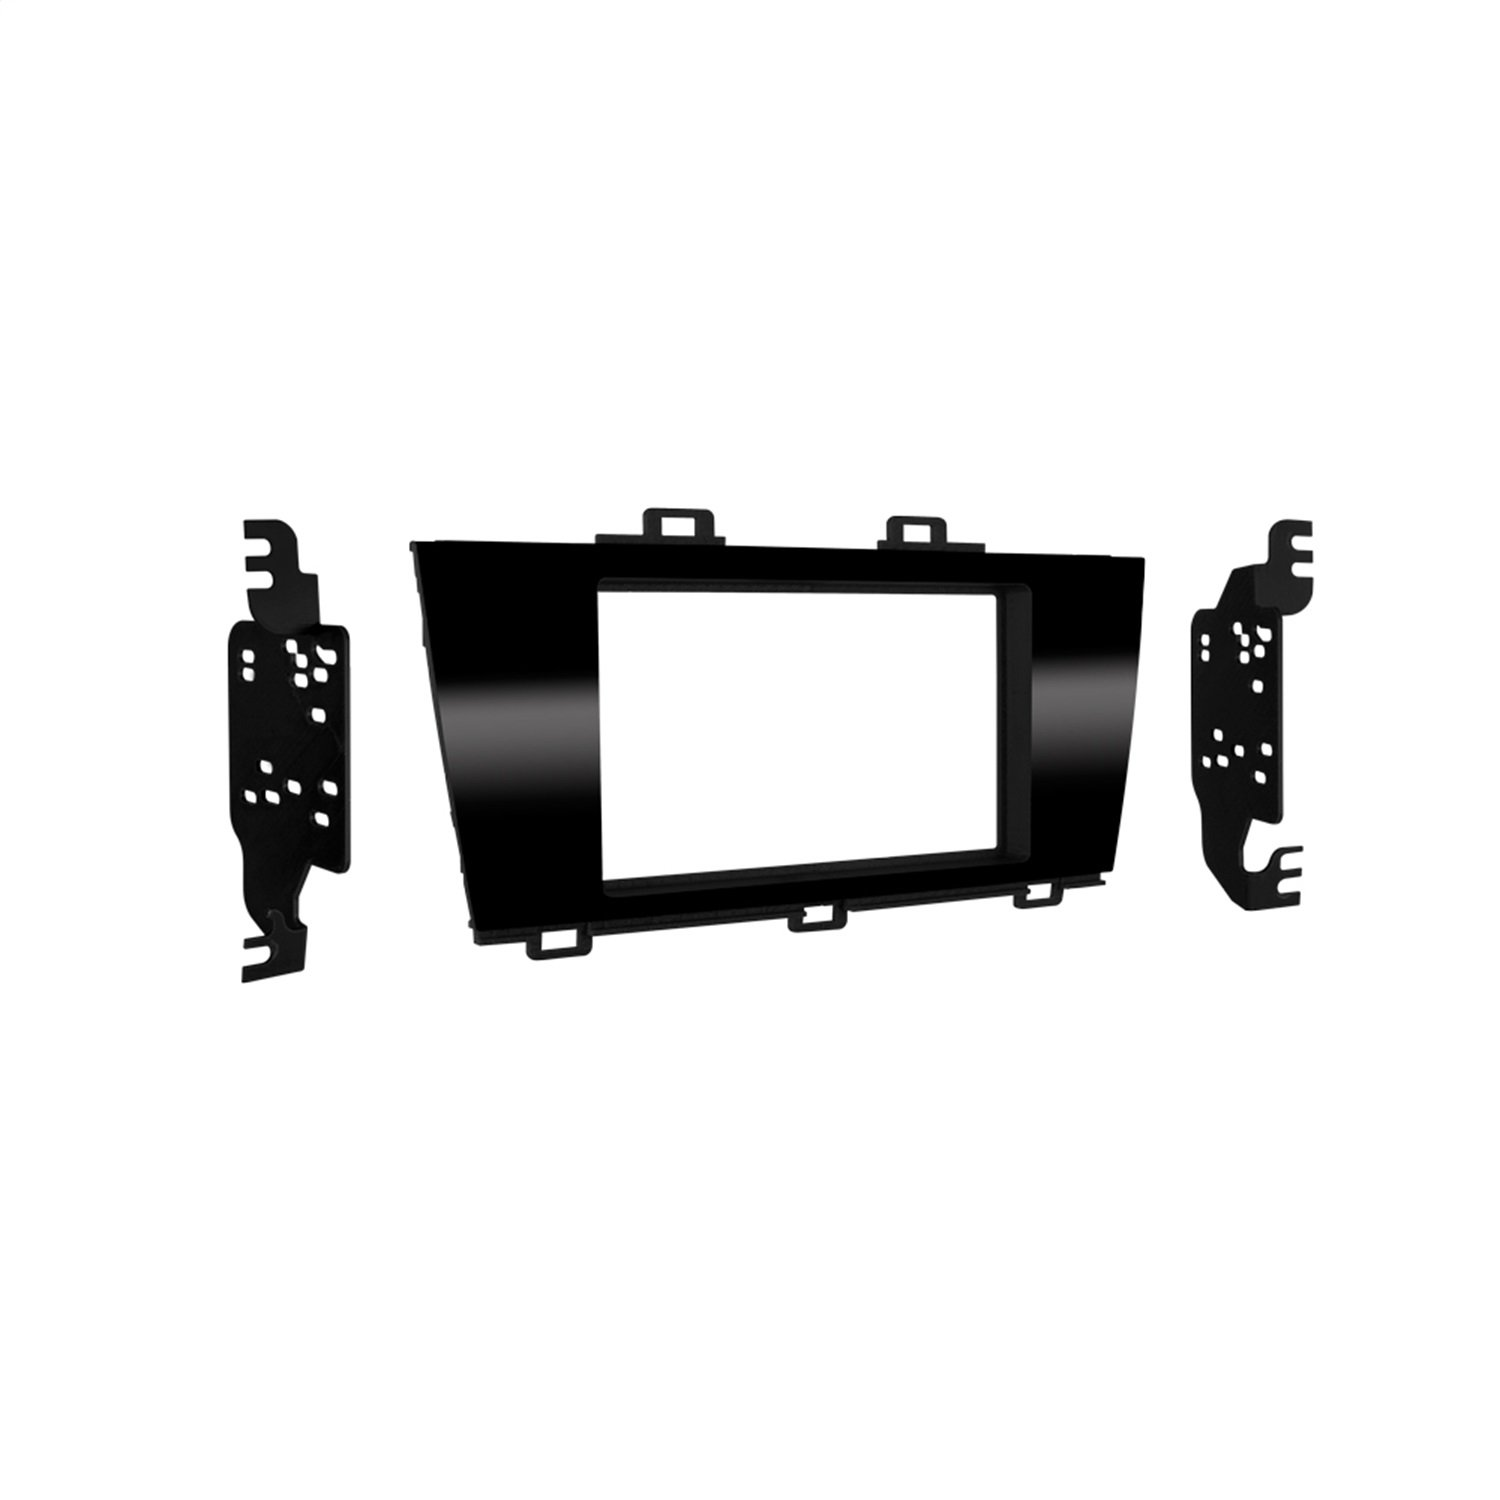 Metra 95-8906HG Double DIN Dash Kit for 2015-UP Subaru Legacy /Outback (Black)